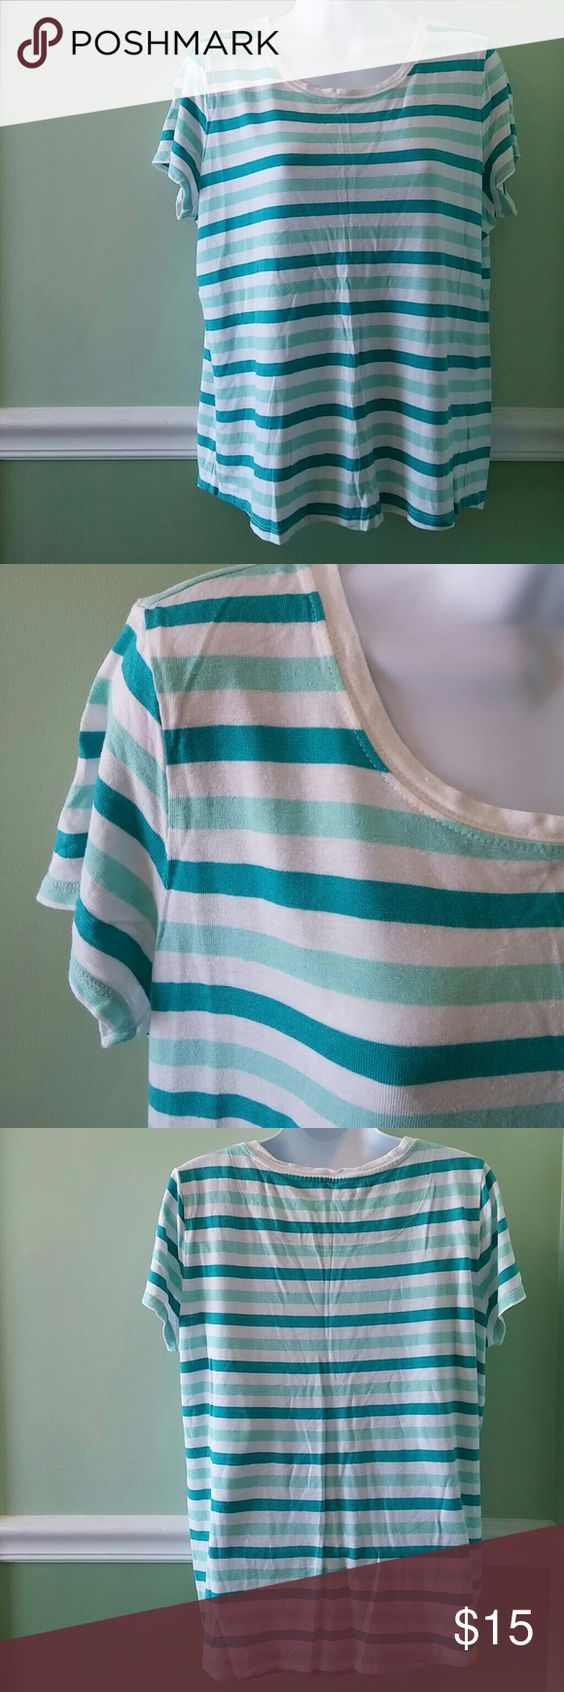 Talbots Striped T-Shirt Like new, hardly worn. Rayon and Linen. Talbots Tops Tees - Short Sleeve